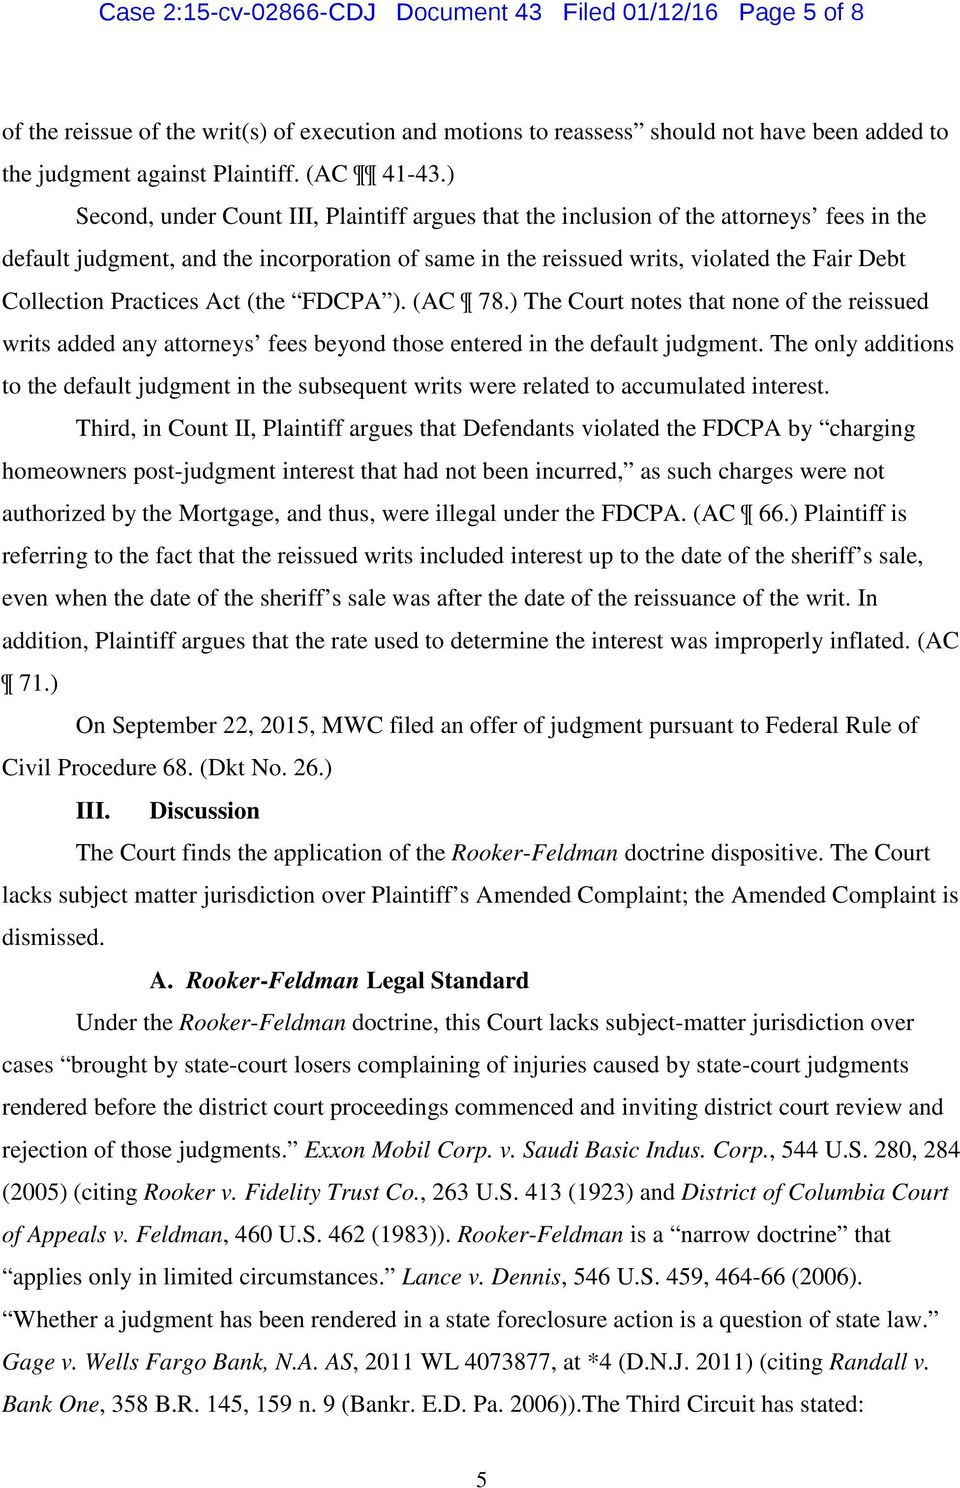 ) Second, under Count III, Plaintiff argues that the inclusion of the attorneys fees in the default judgment, and the incorporation of same in the reissued writs, violated the Fair Debt Collection